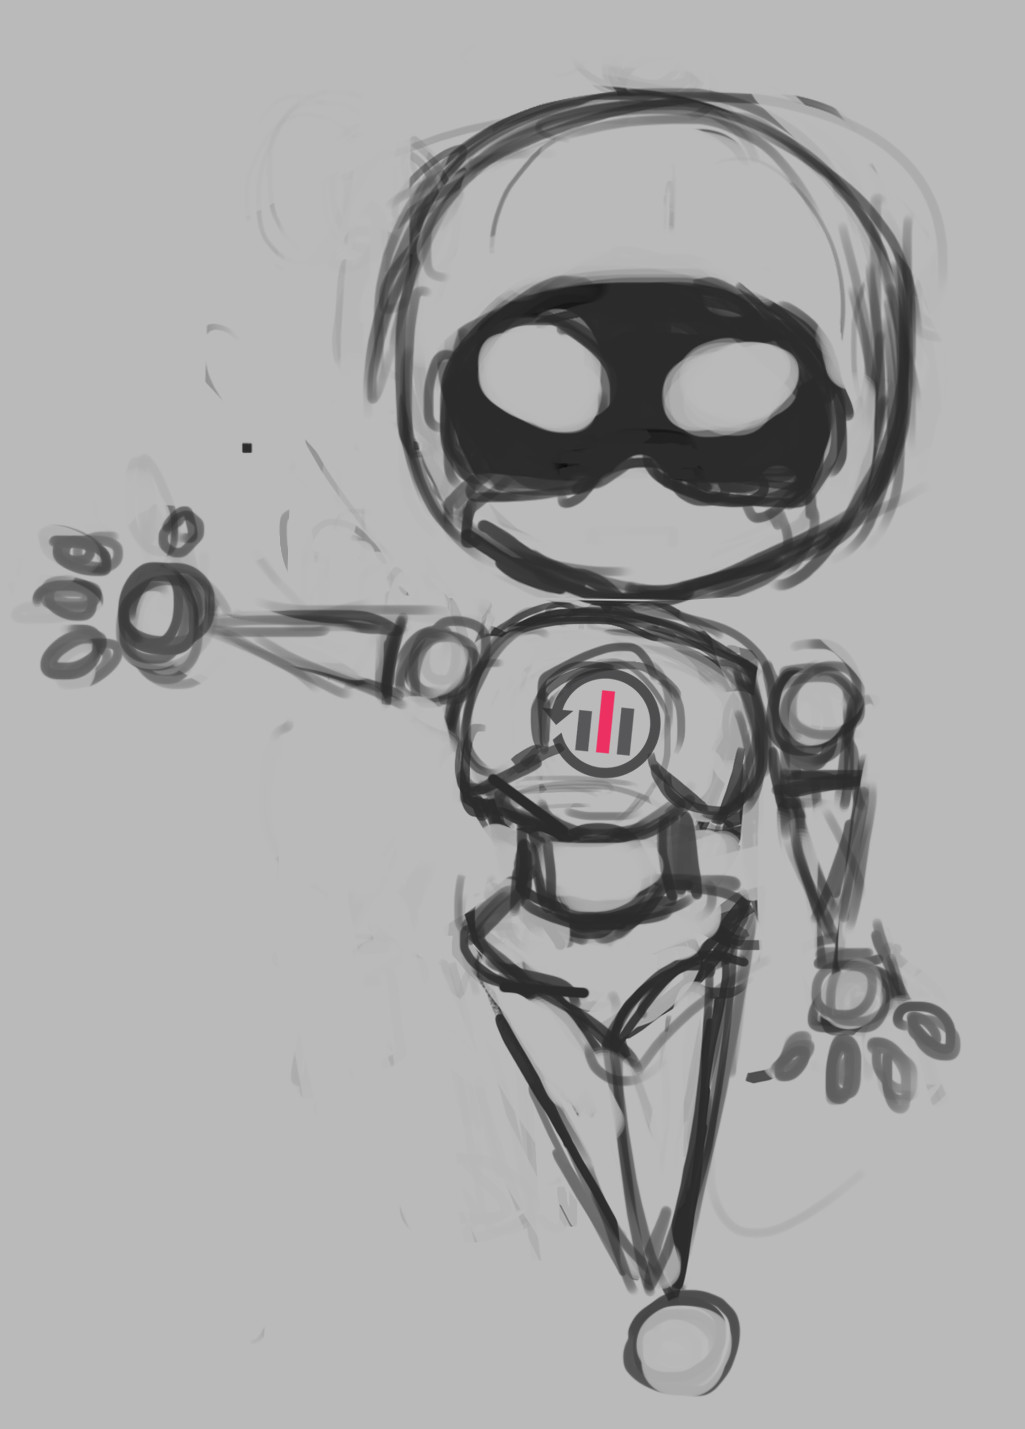 Simple Concept art of the Bot Character